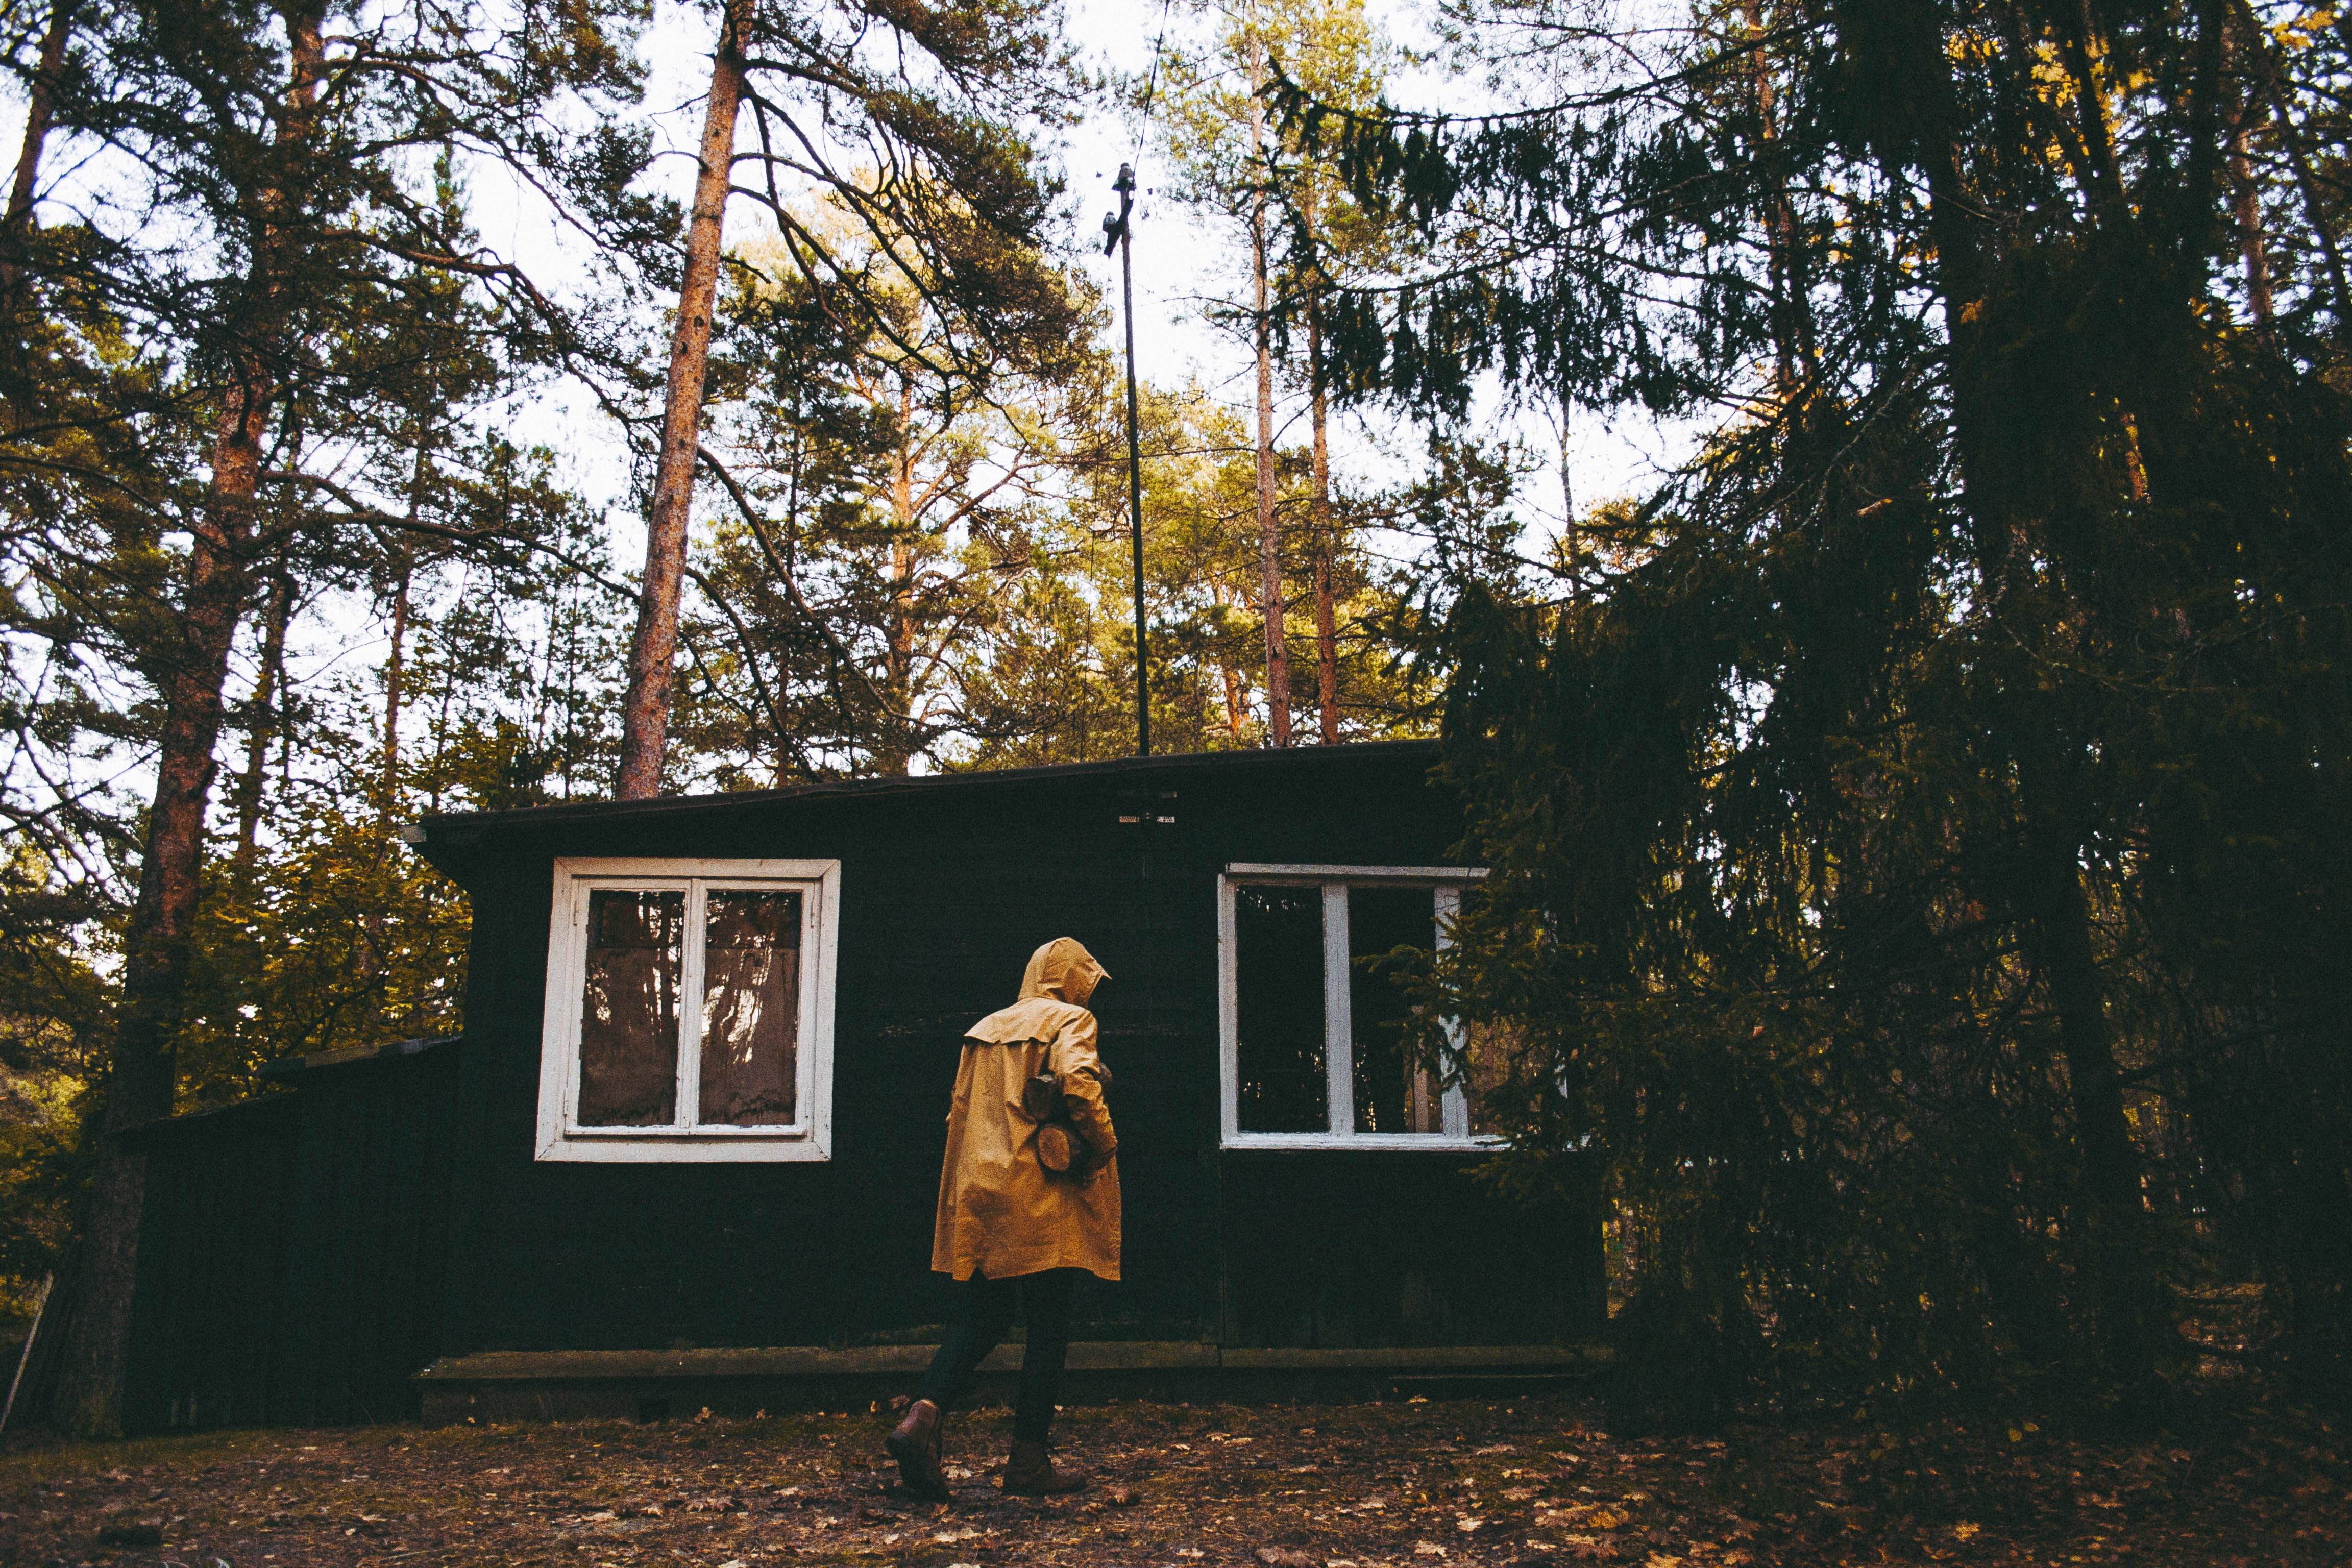 A person walking with a raincoat in the forest in front of a cabin